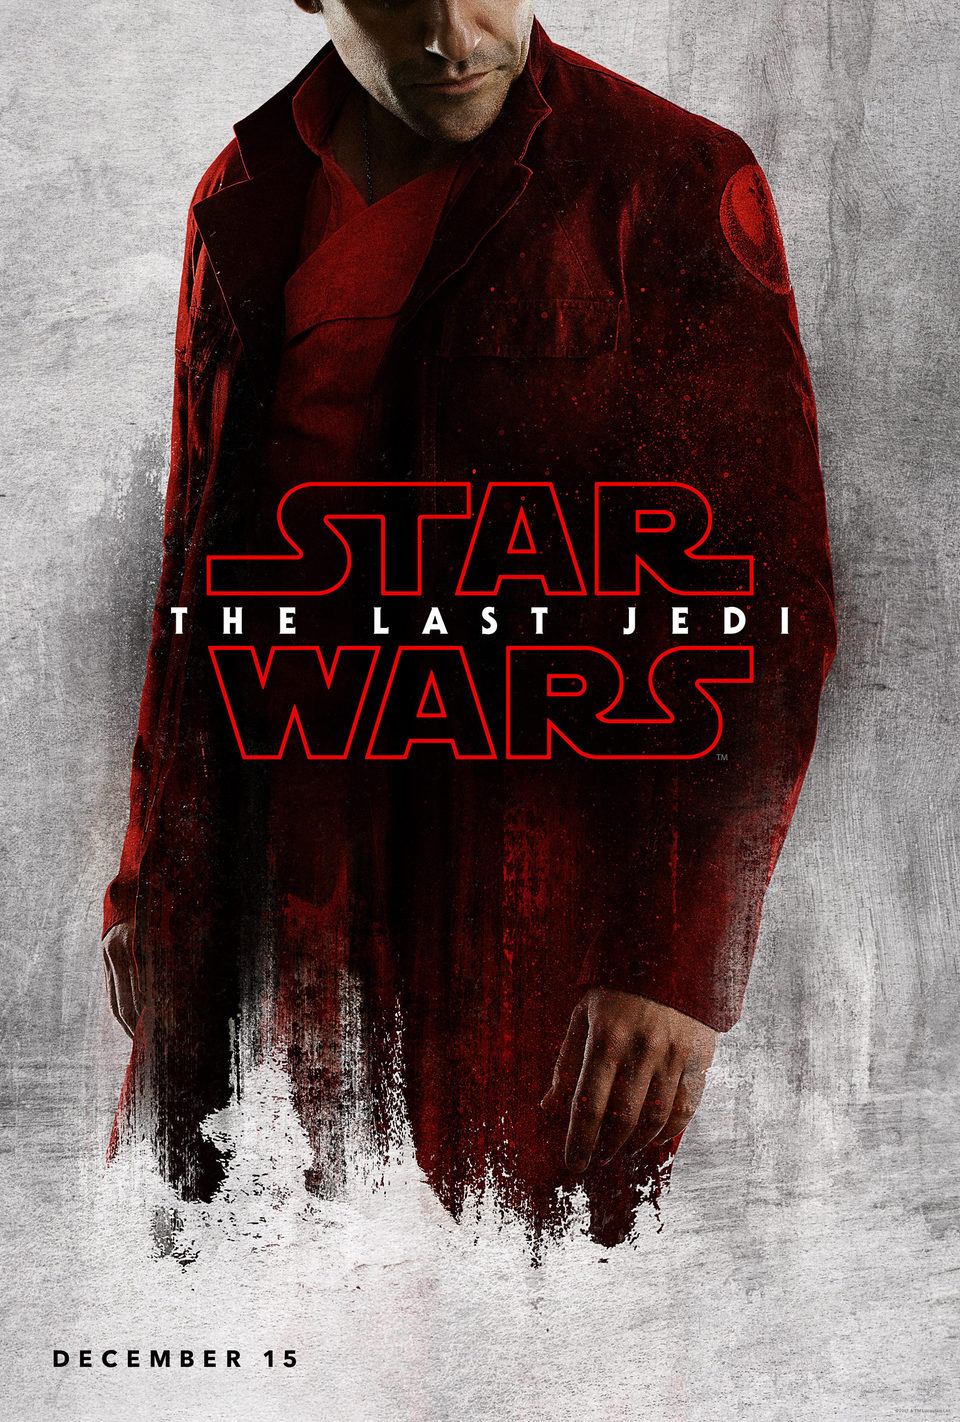 Poe poster for Star Wars: The Last Jedi